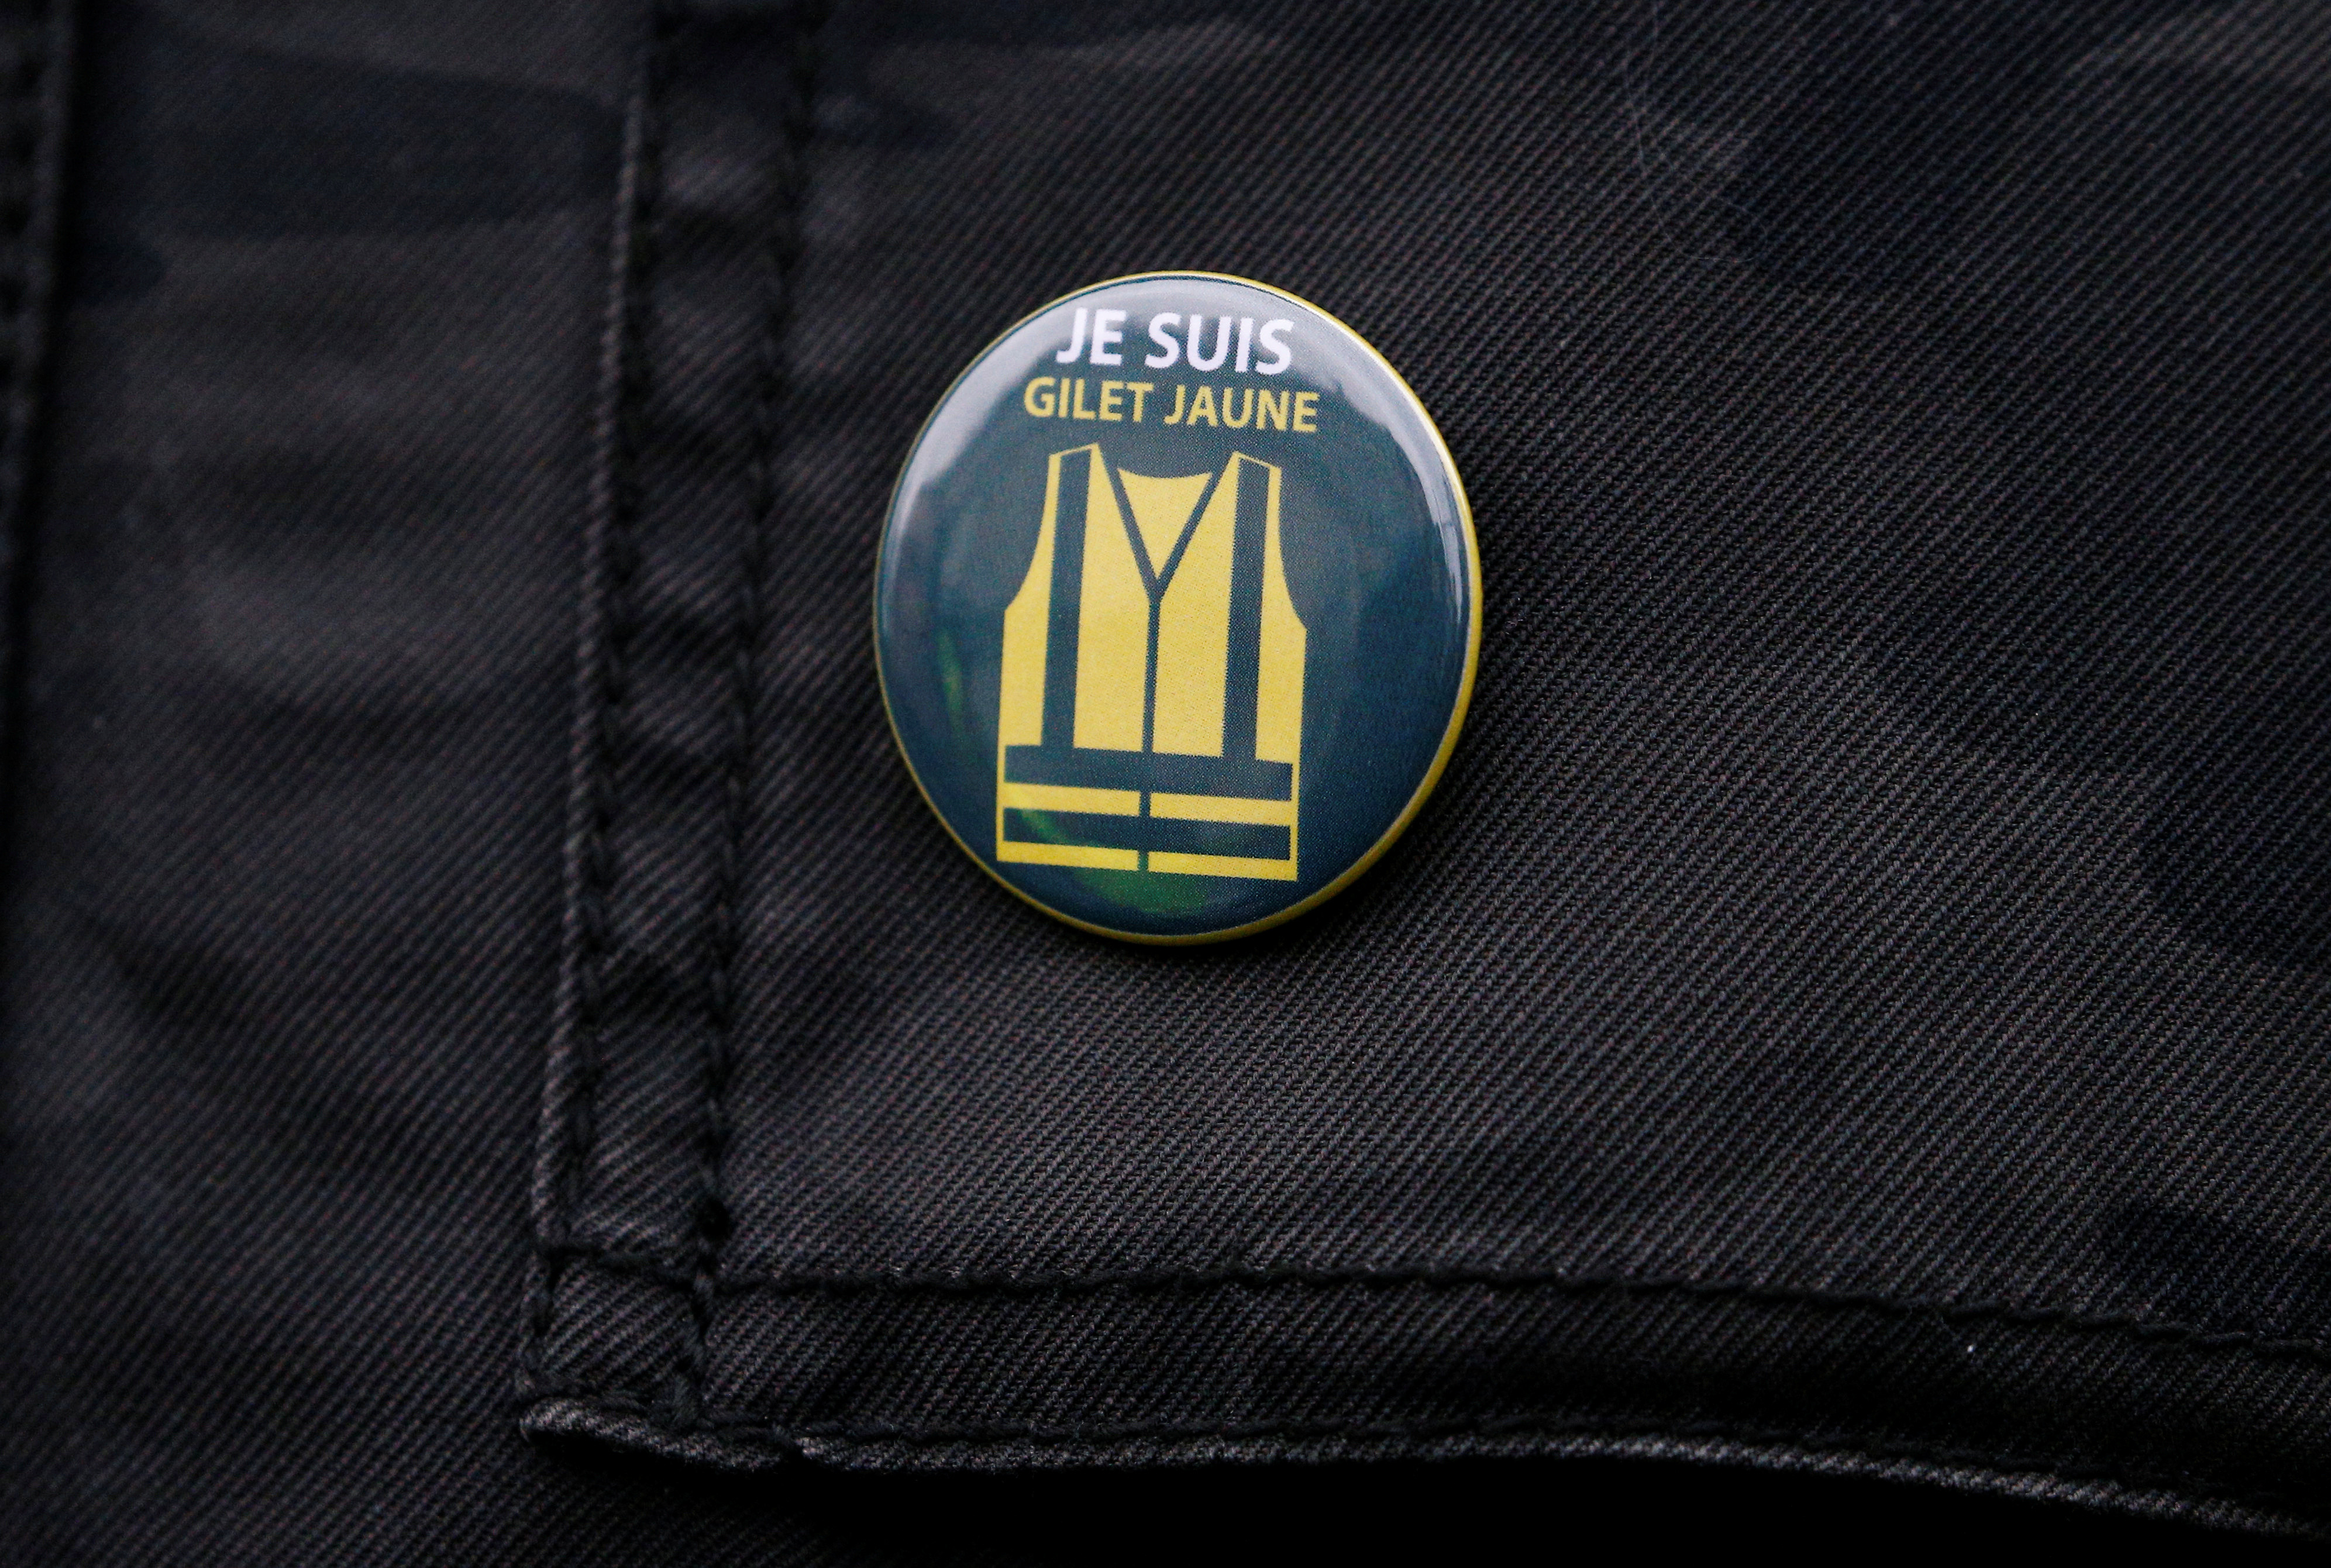 A protester wears a vest pin on which is read: